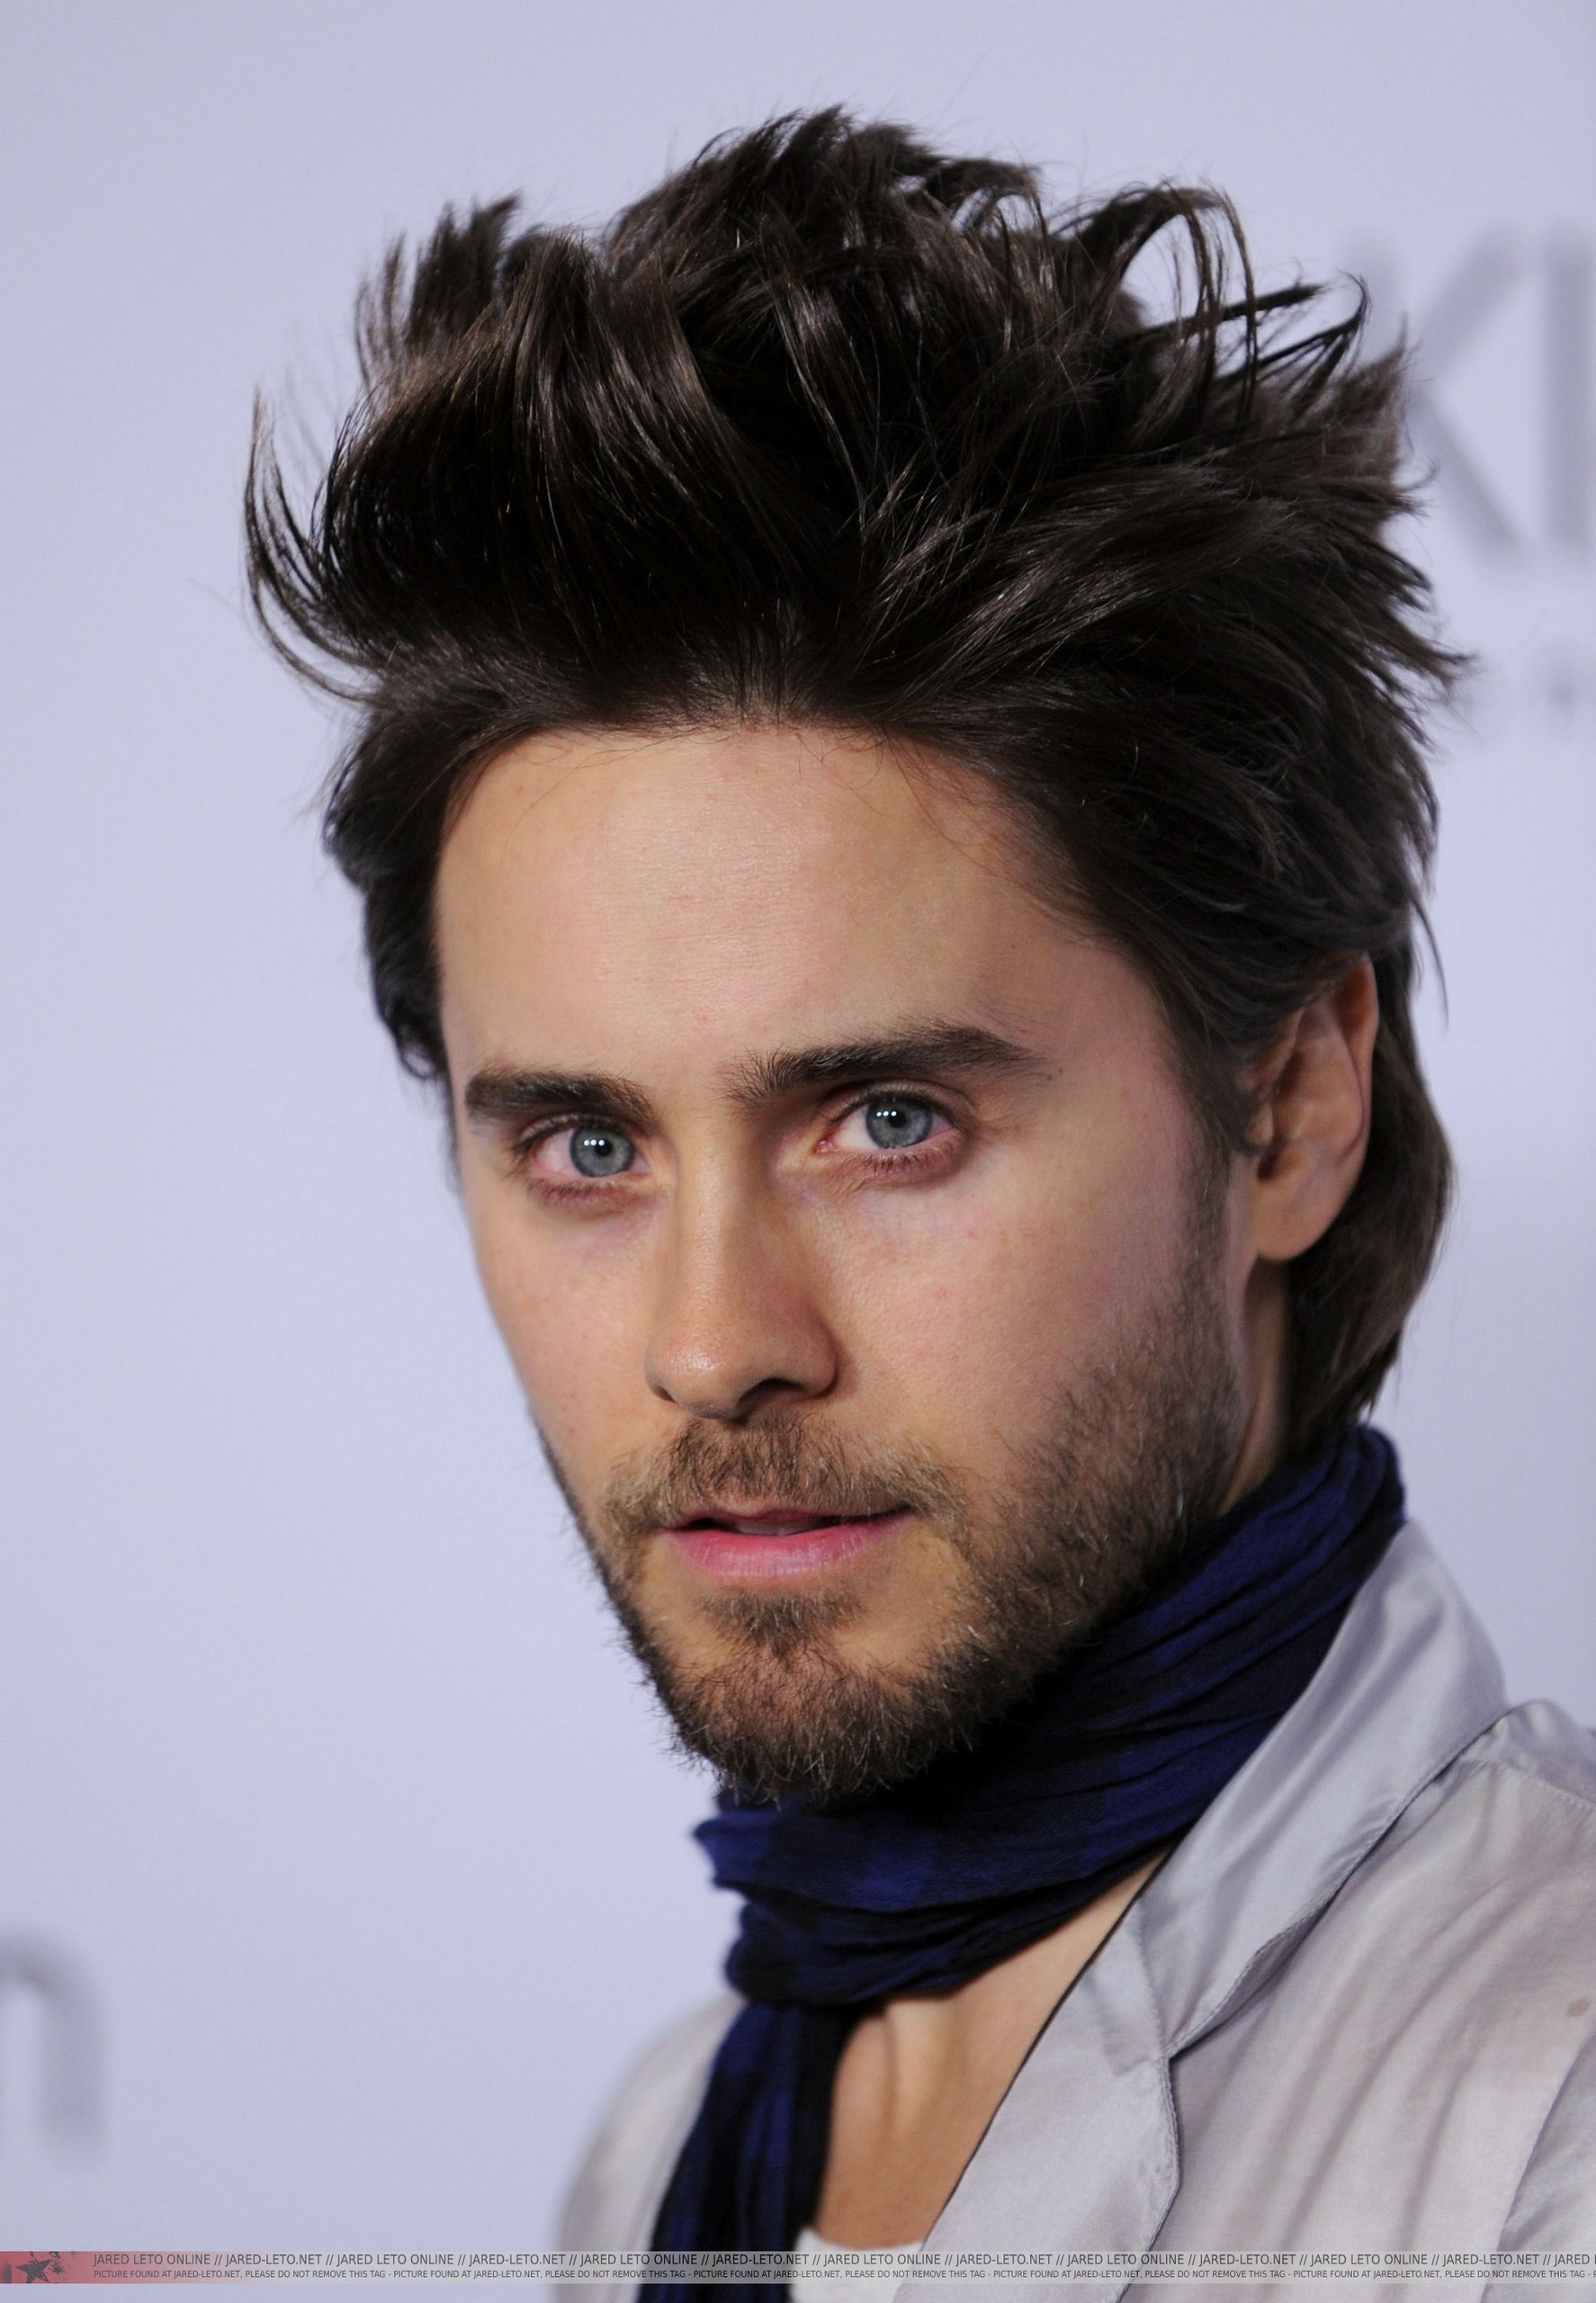 jared - Jared Leto Photo (18319245) - Fanpop fanclubs